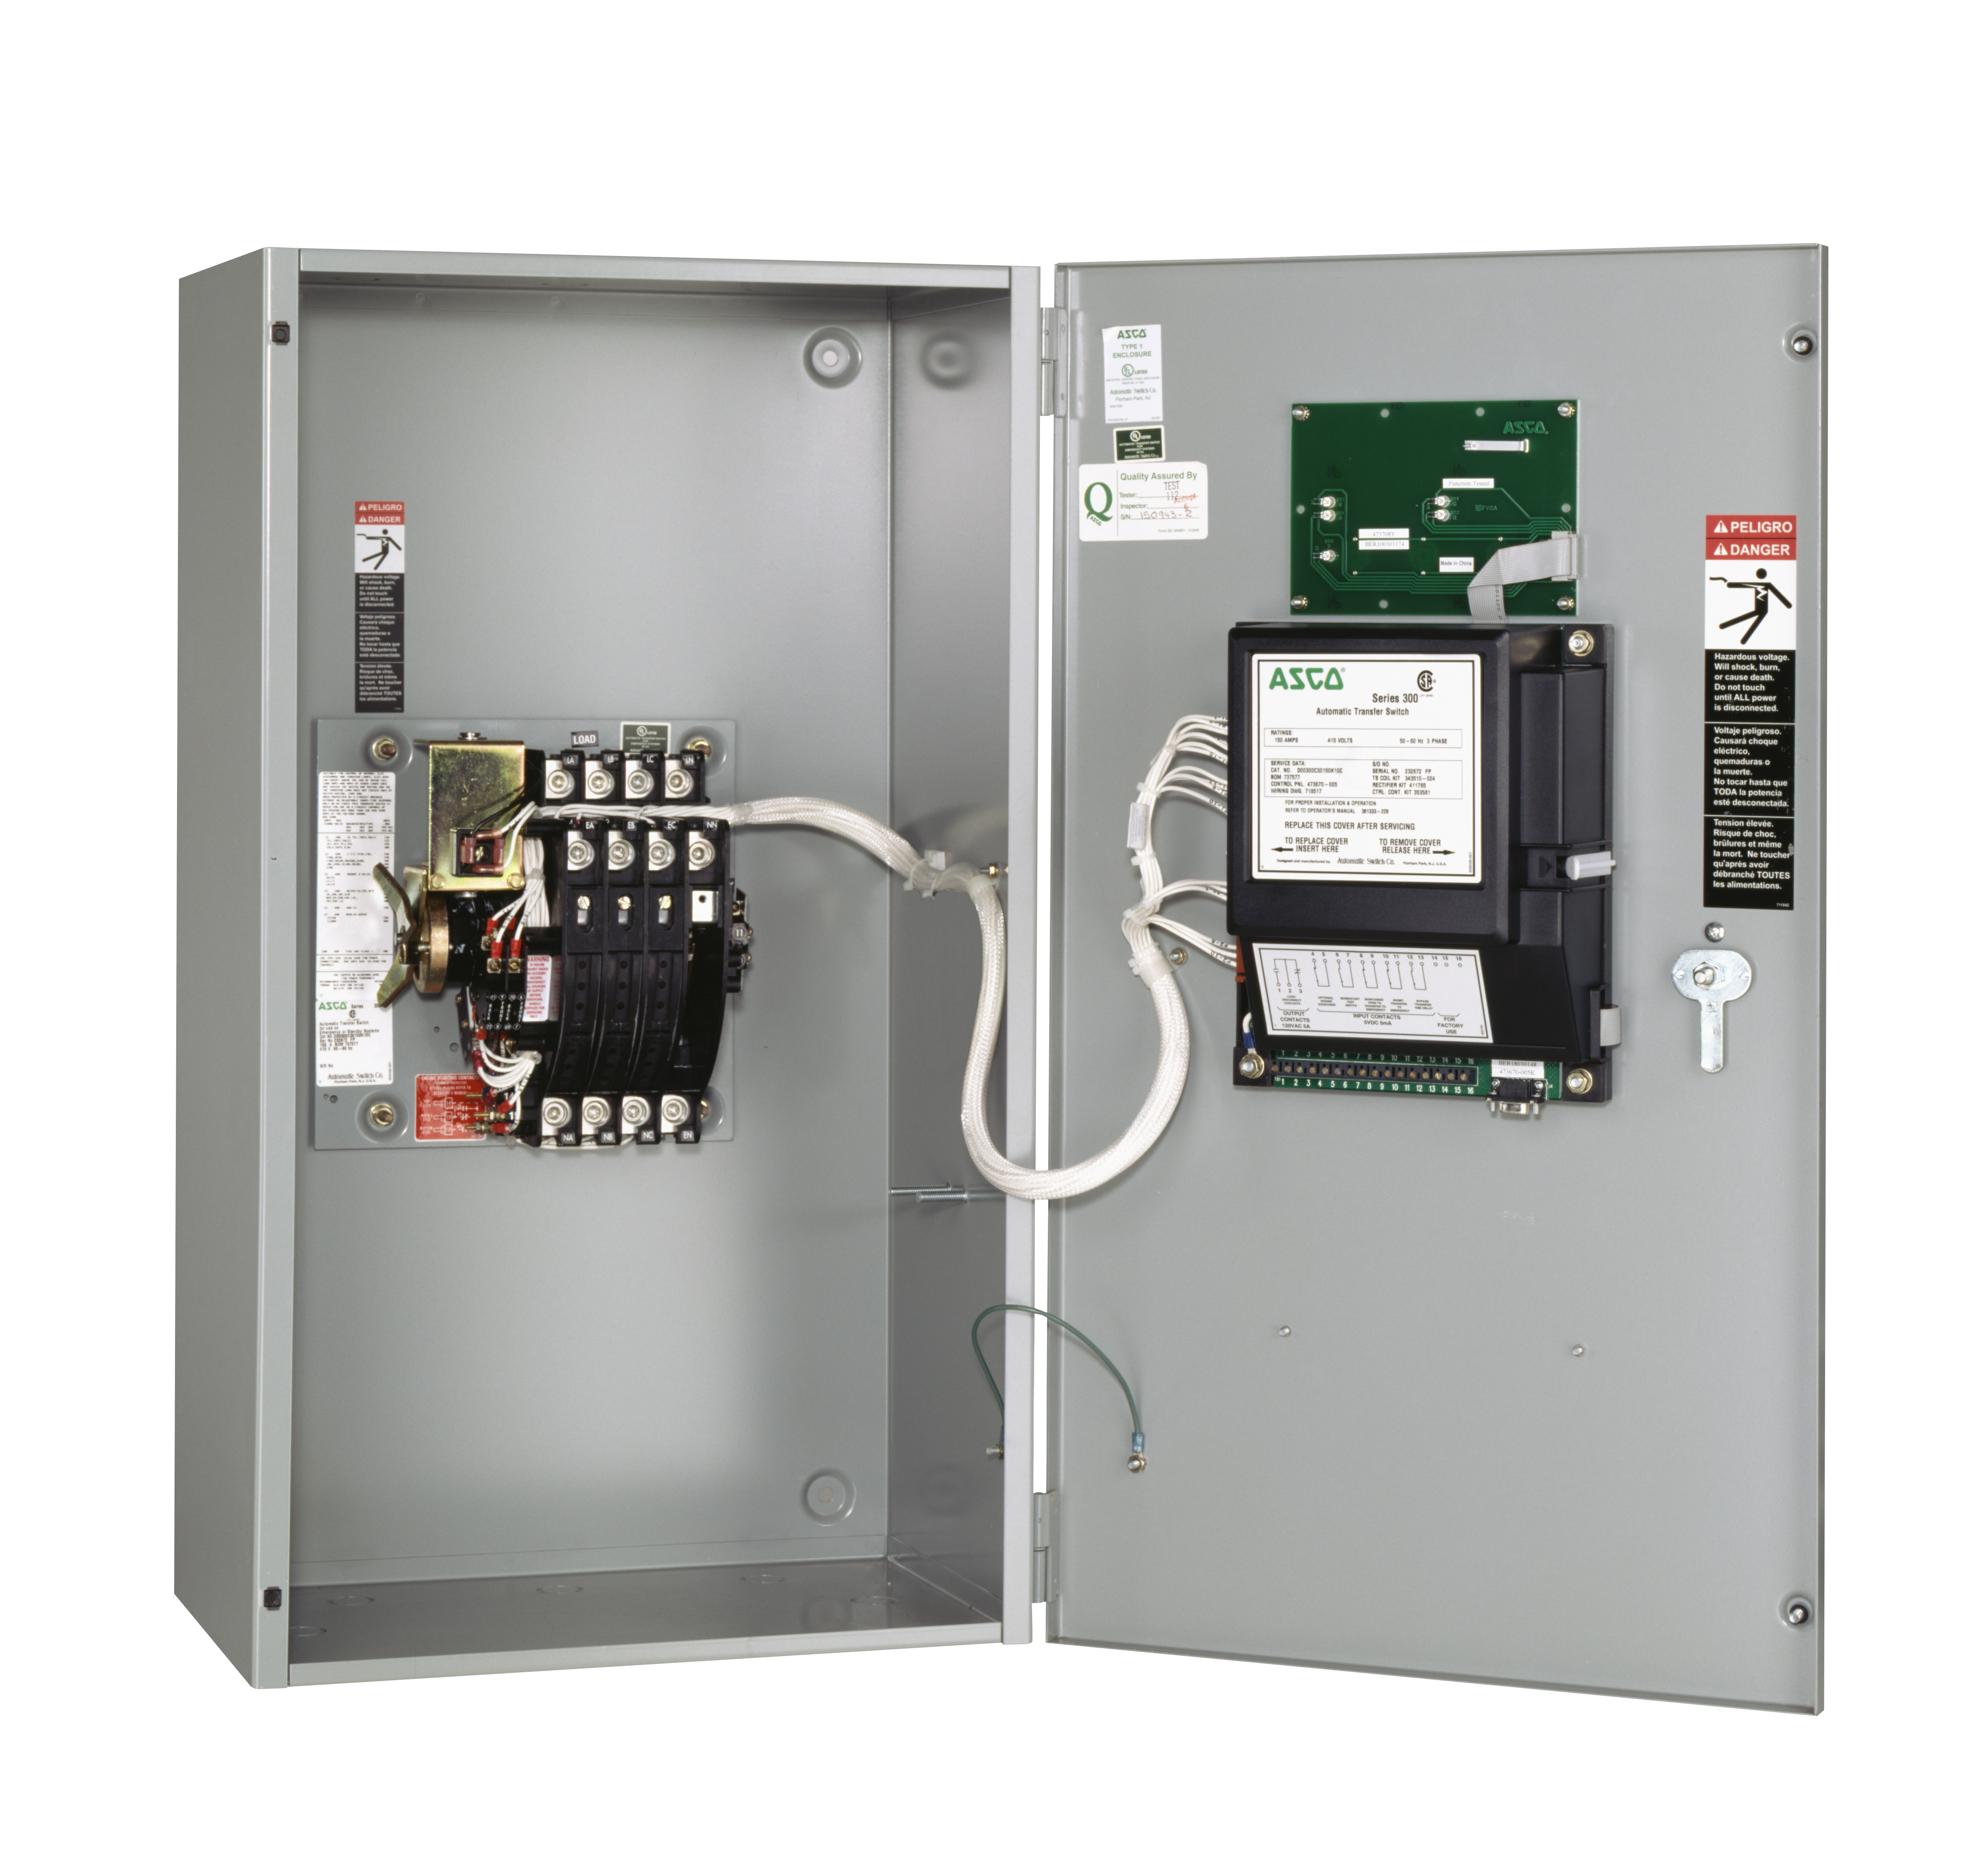 70 amp asco automatic transfer switch - 240 volt